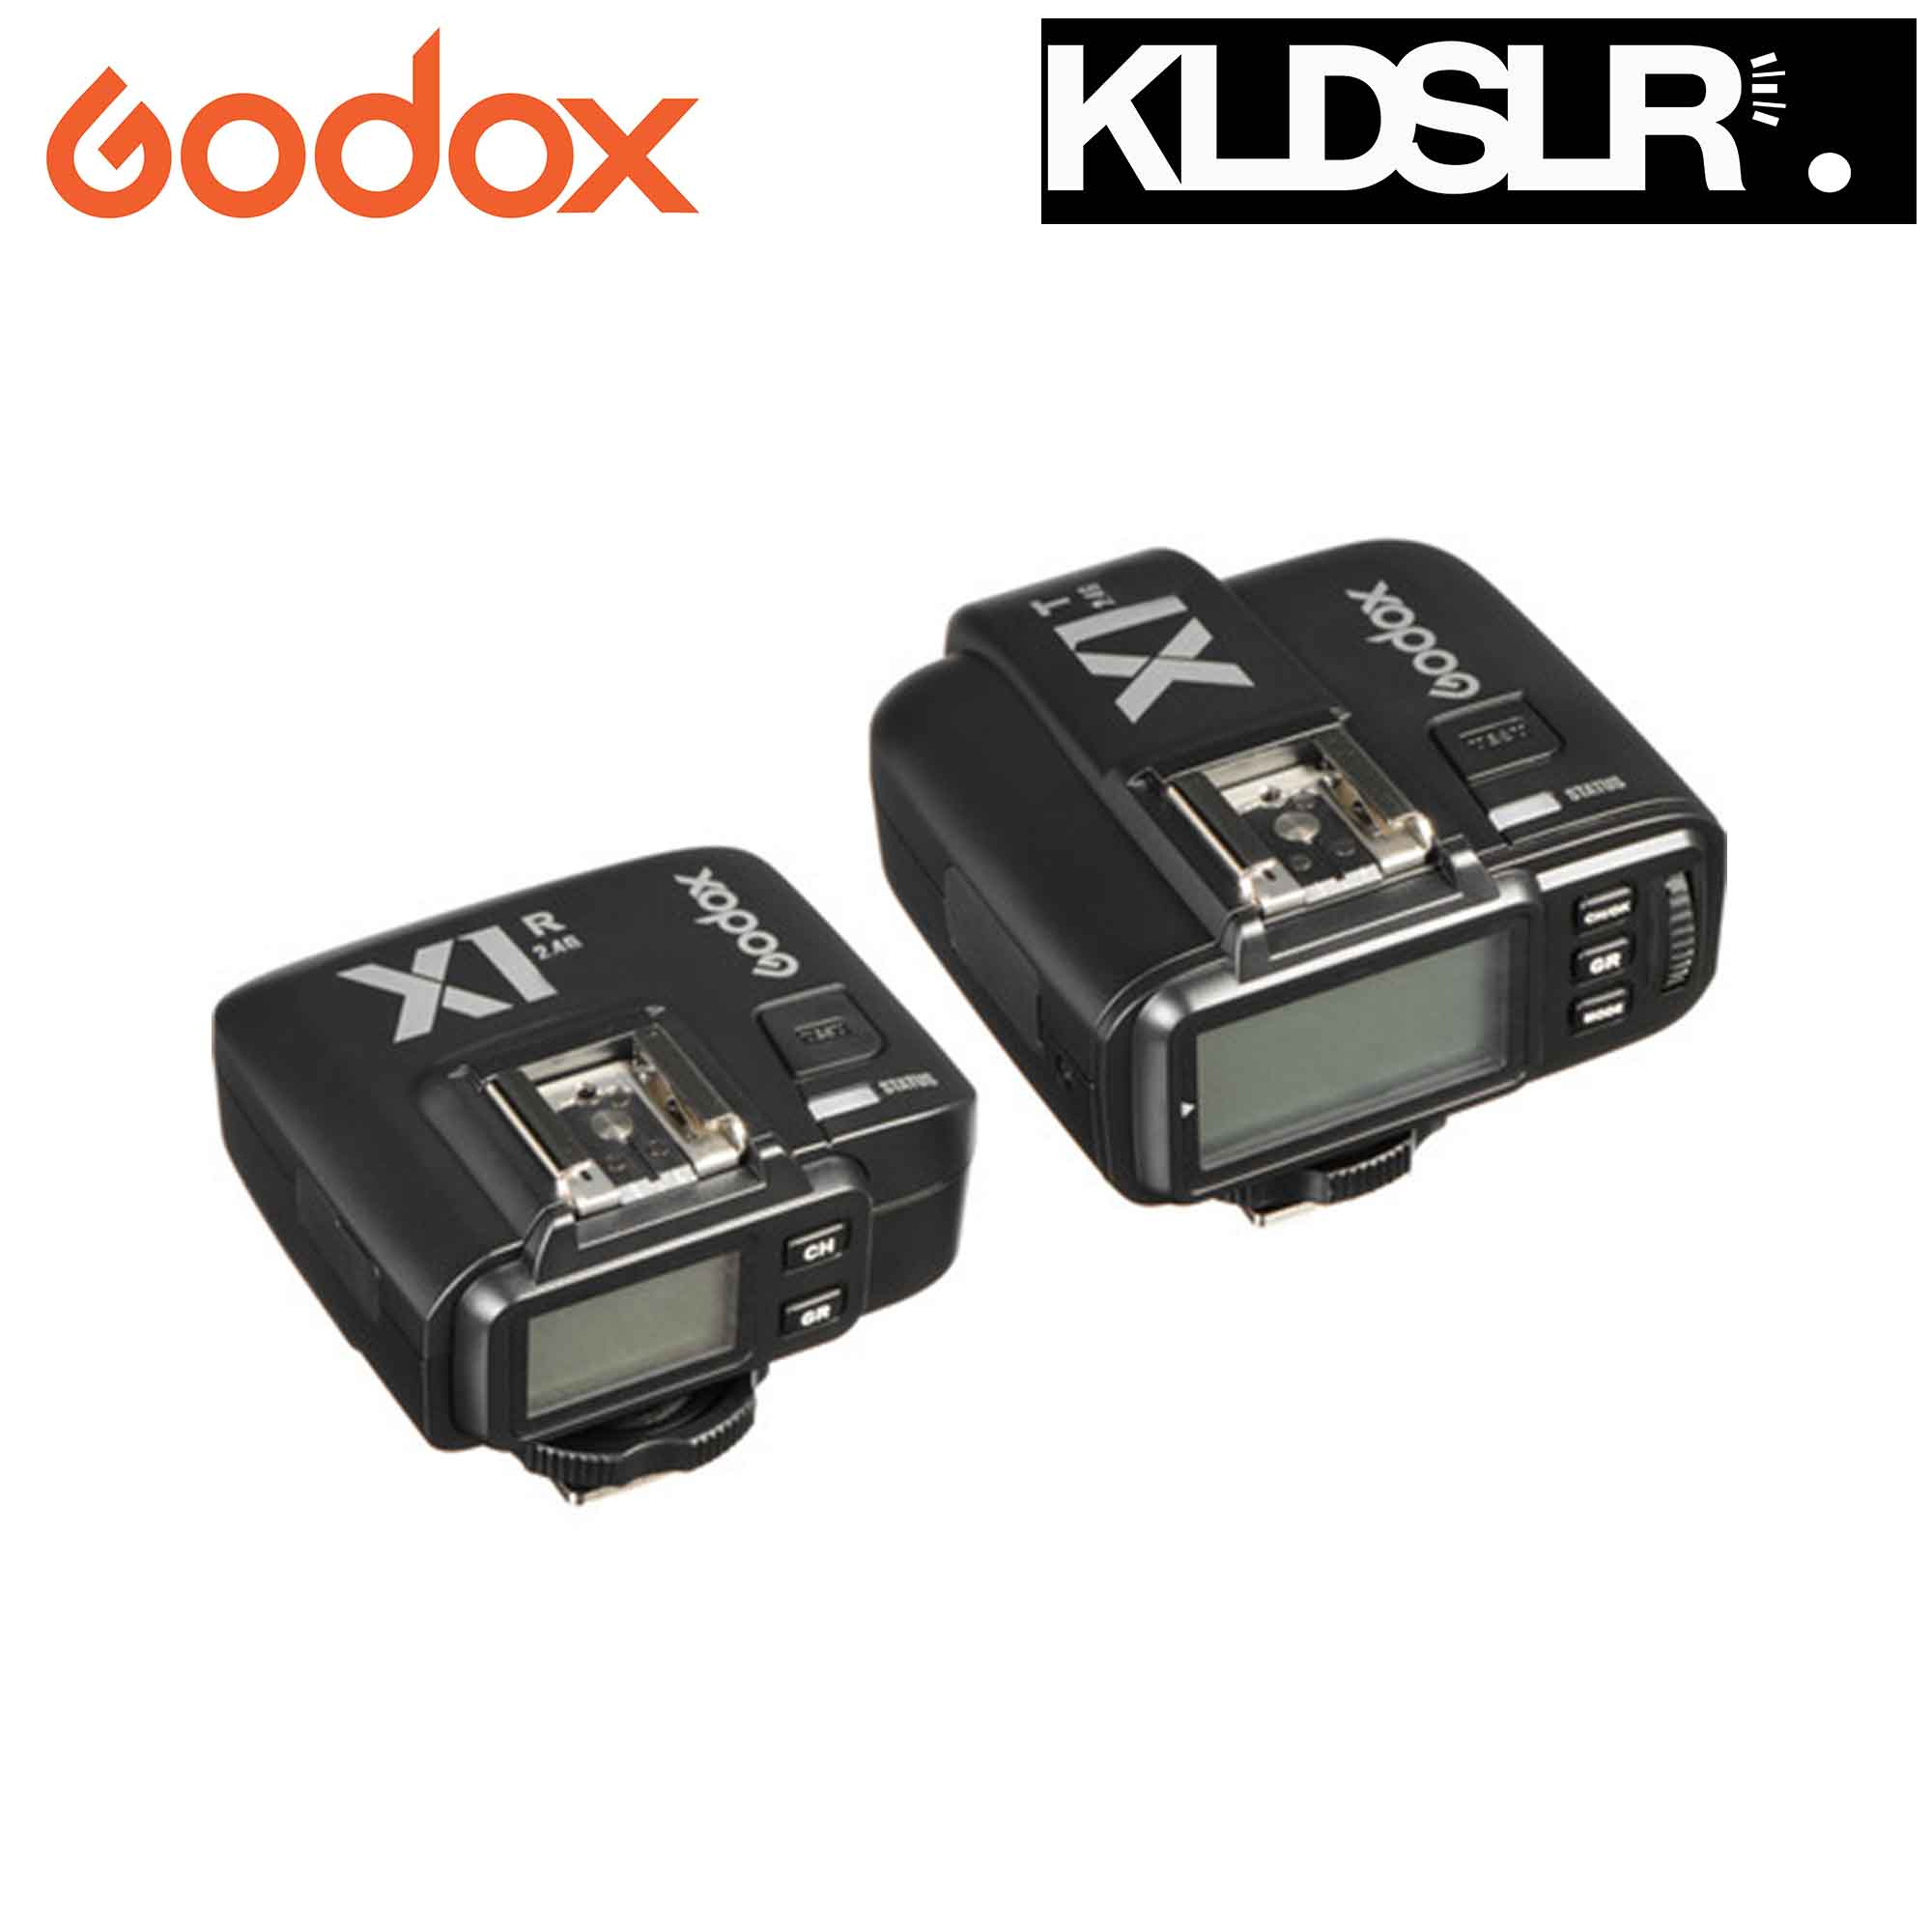 Godox X1C TTL Wireless Flash Trigger Set for Canon (1 Receiver + 1 Transmitter)